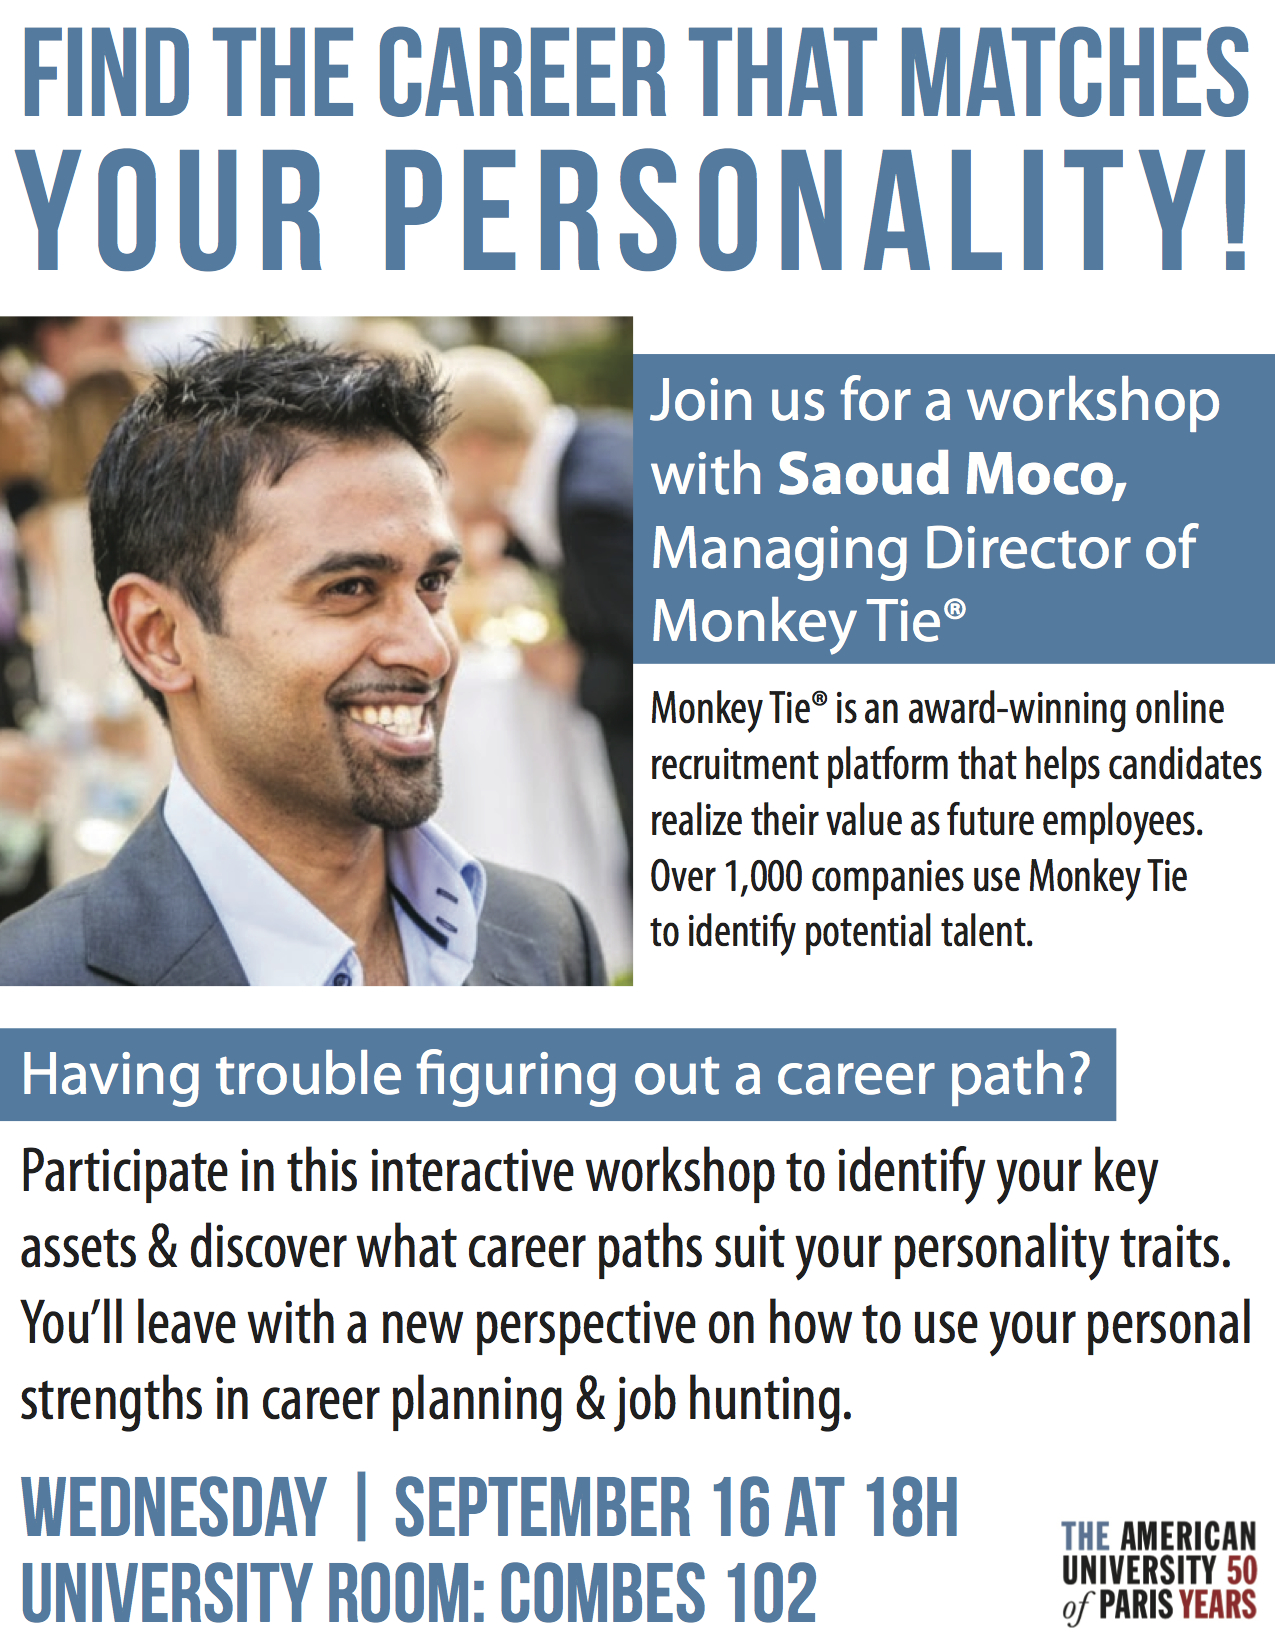 A flyer designed for the Career Development Office at the American University of Paris.